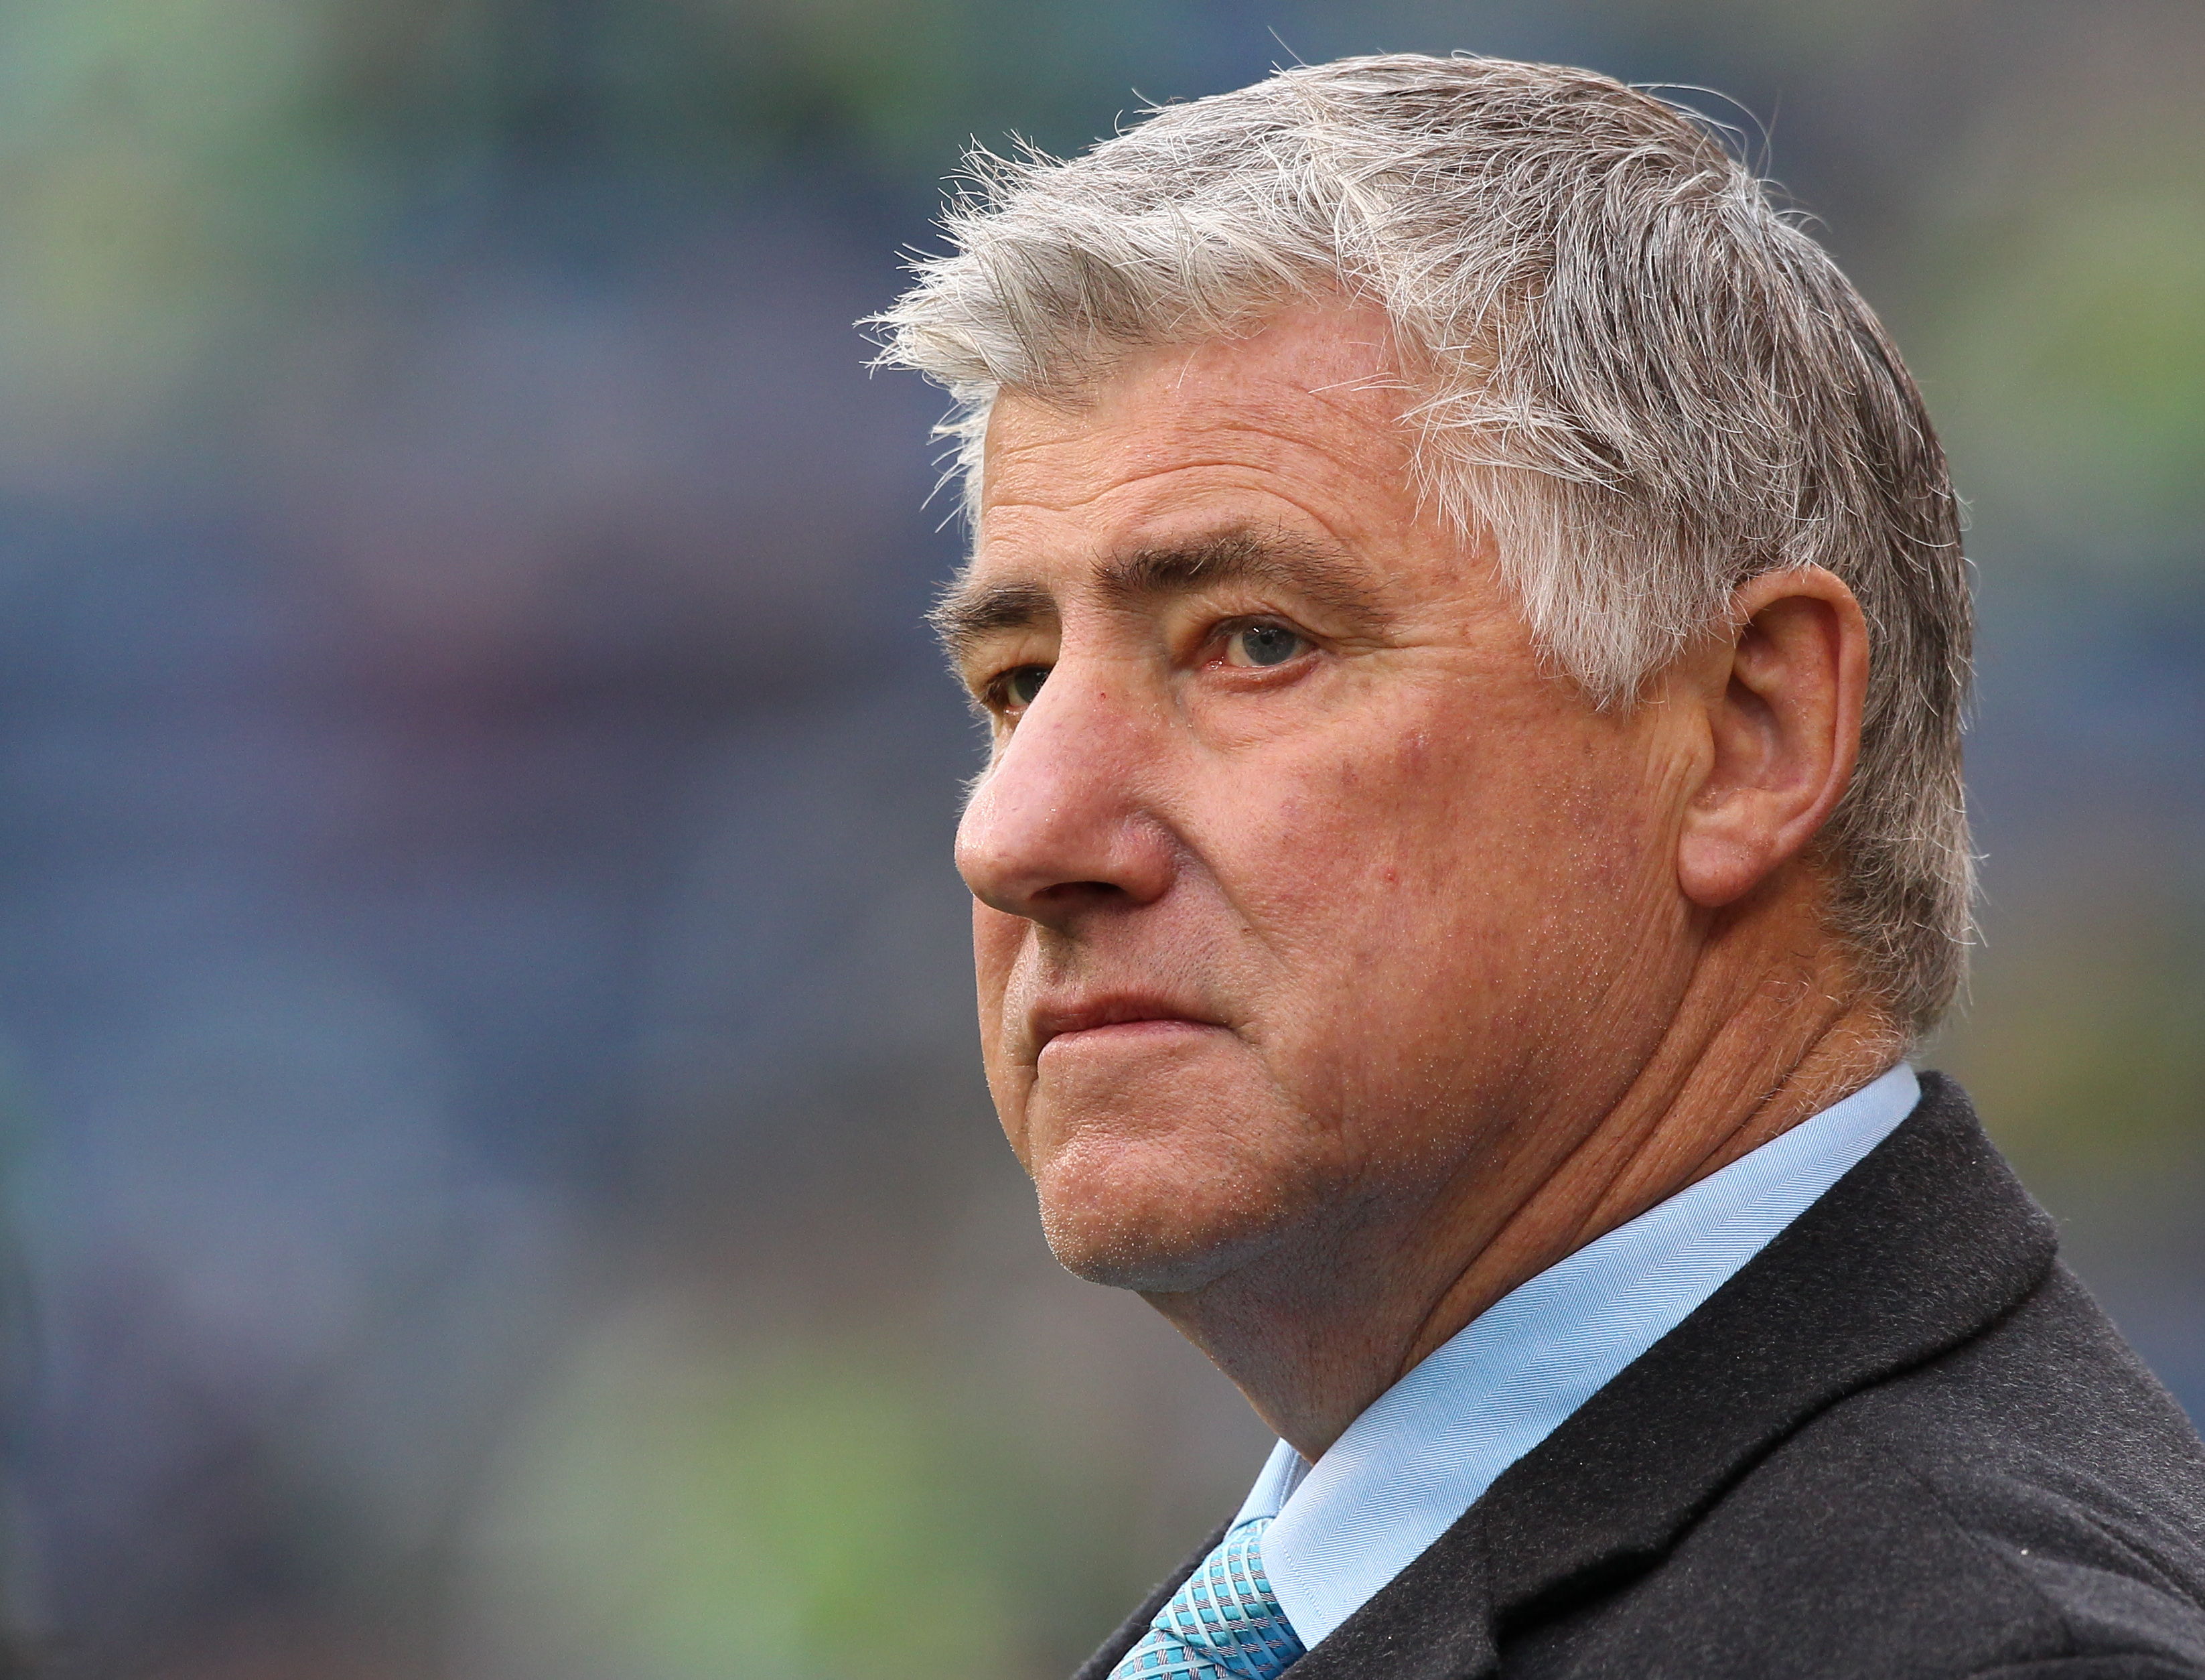 Seattle Sounders part ways with coach Sigi Schmid